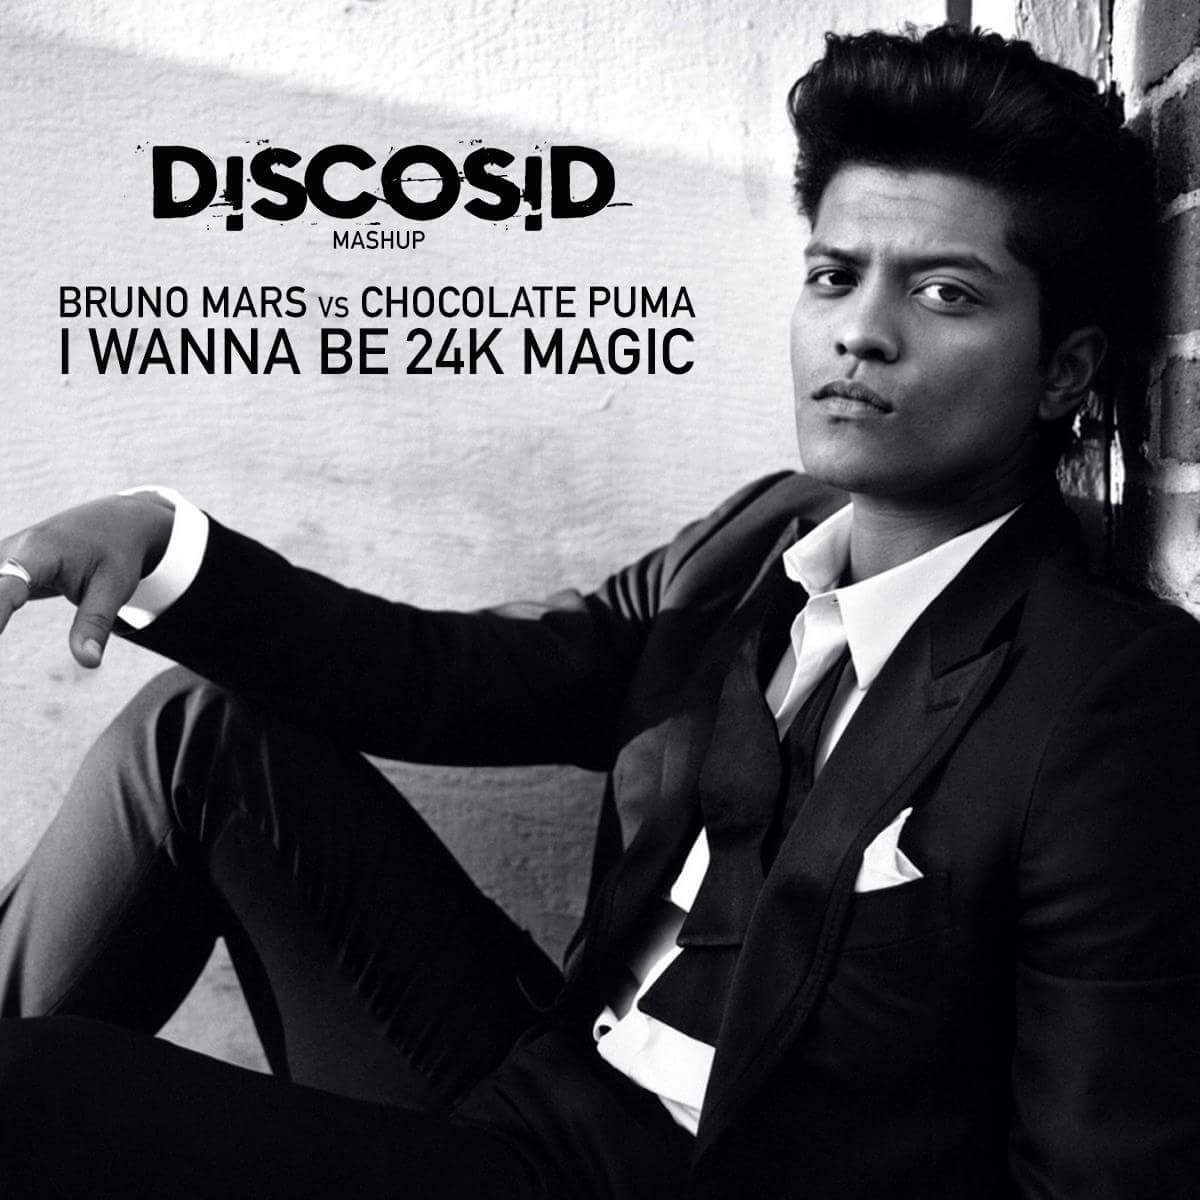 Bruno Mars Vs Chocolate Puma - I Wanna Be 24K Magic (Discosid Mashup)